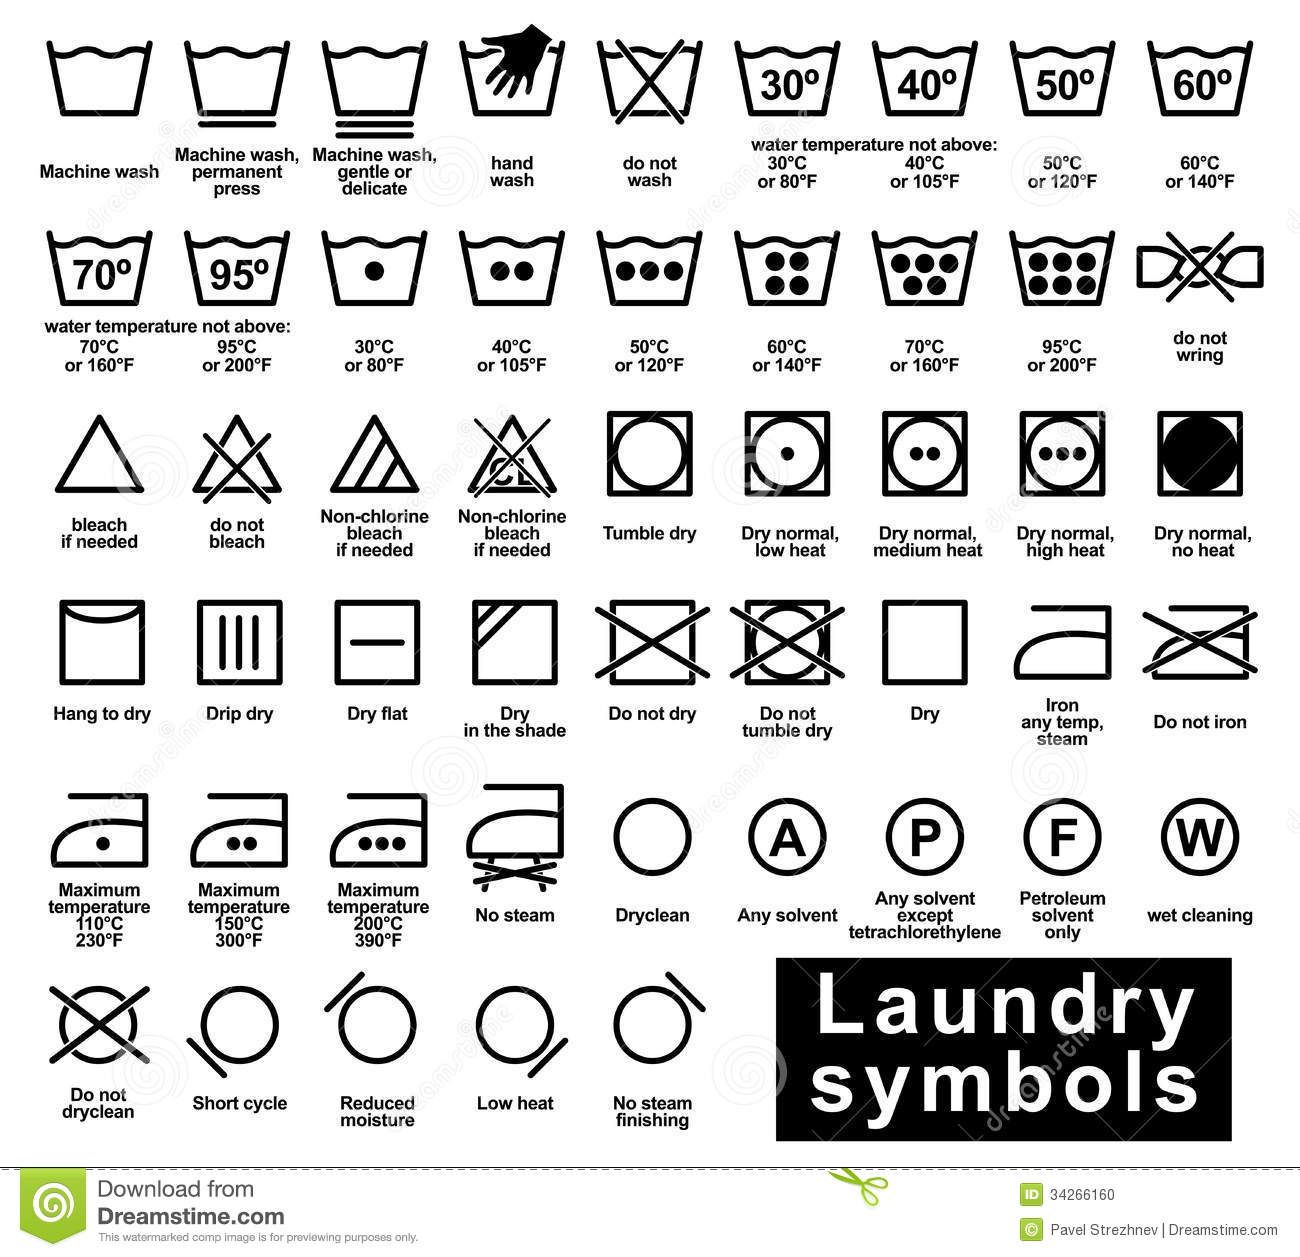 International Laundry Symbols Laundry Symbols Laundry Care